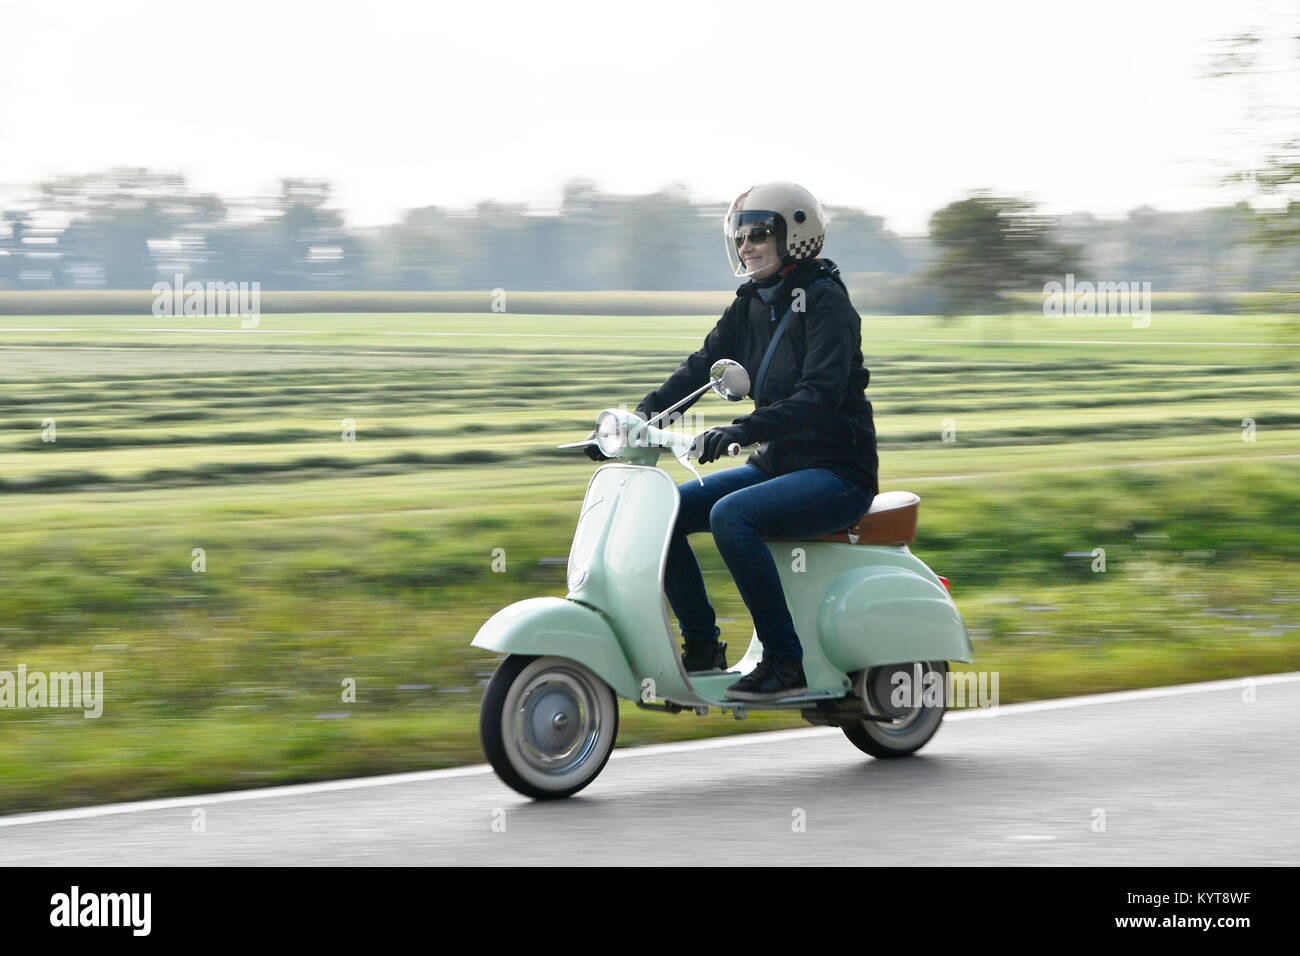 Vespa Scooter Vintage Tour Trip Drive Street Nature Historic Stock Photo Alamy